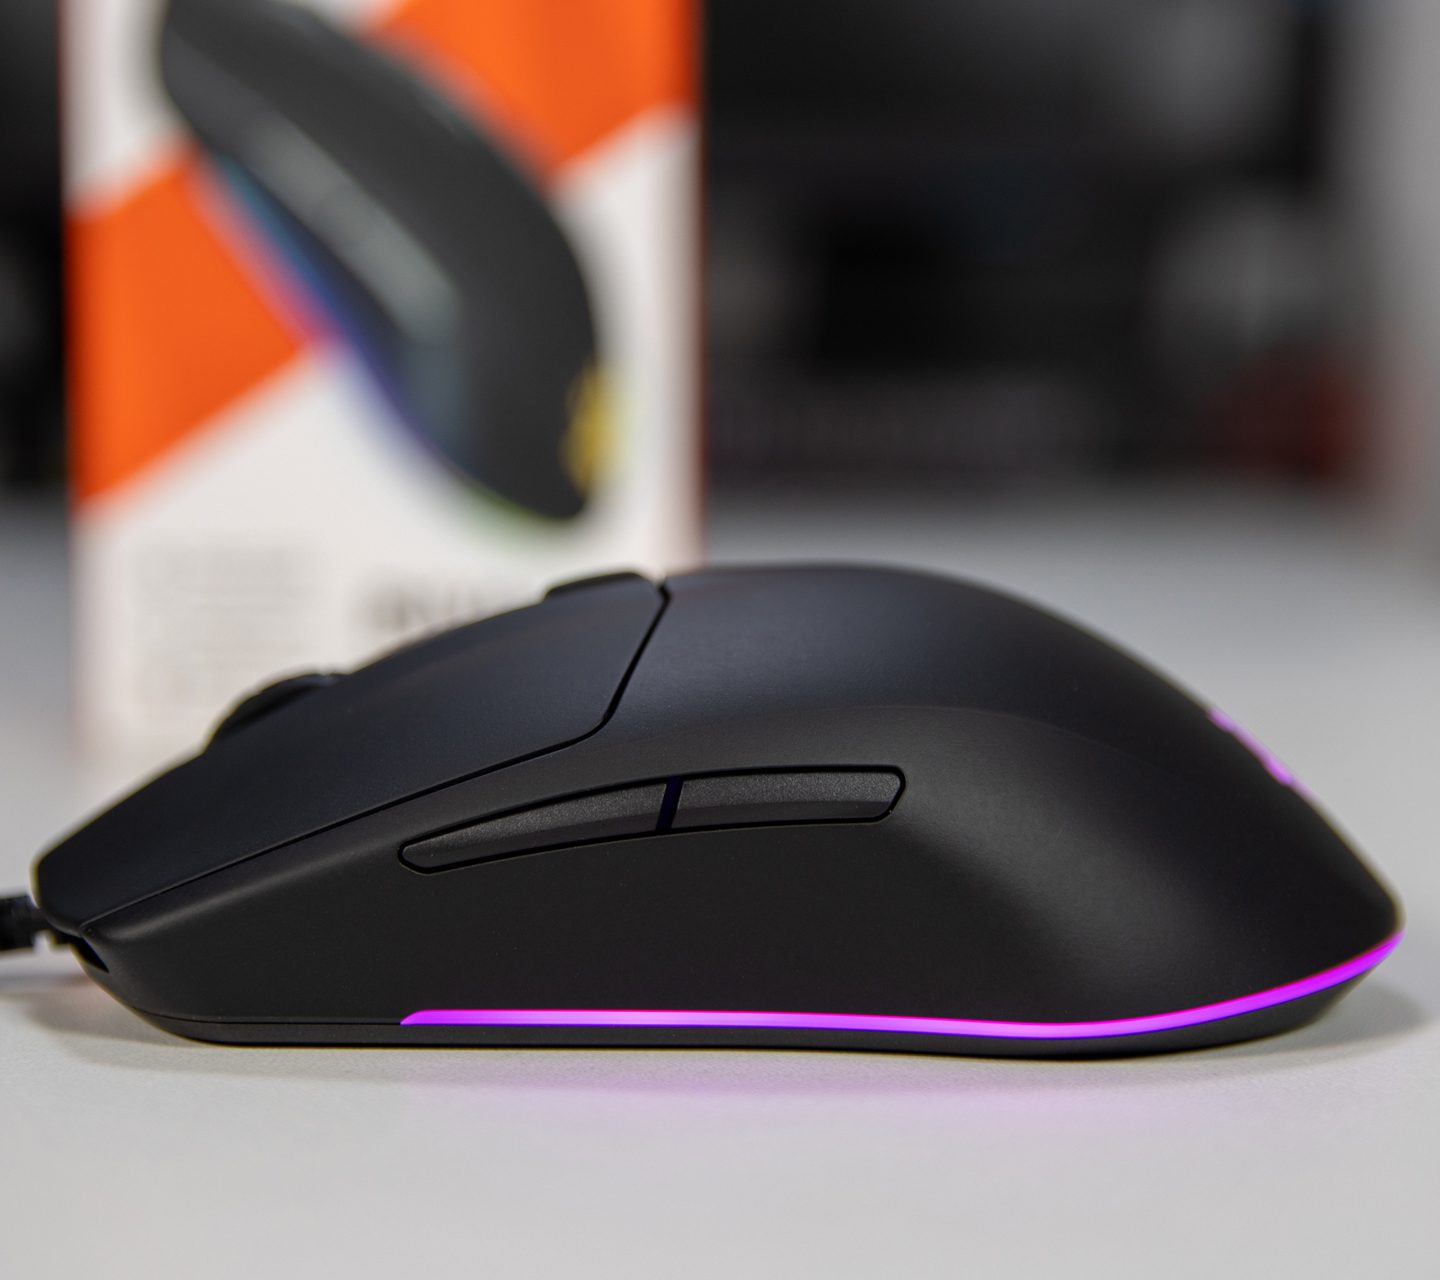 Steelseries Rival 3 Review Gaming Mouse